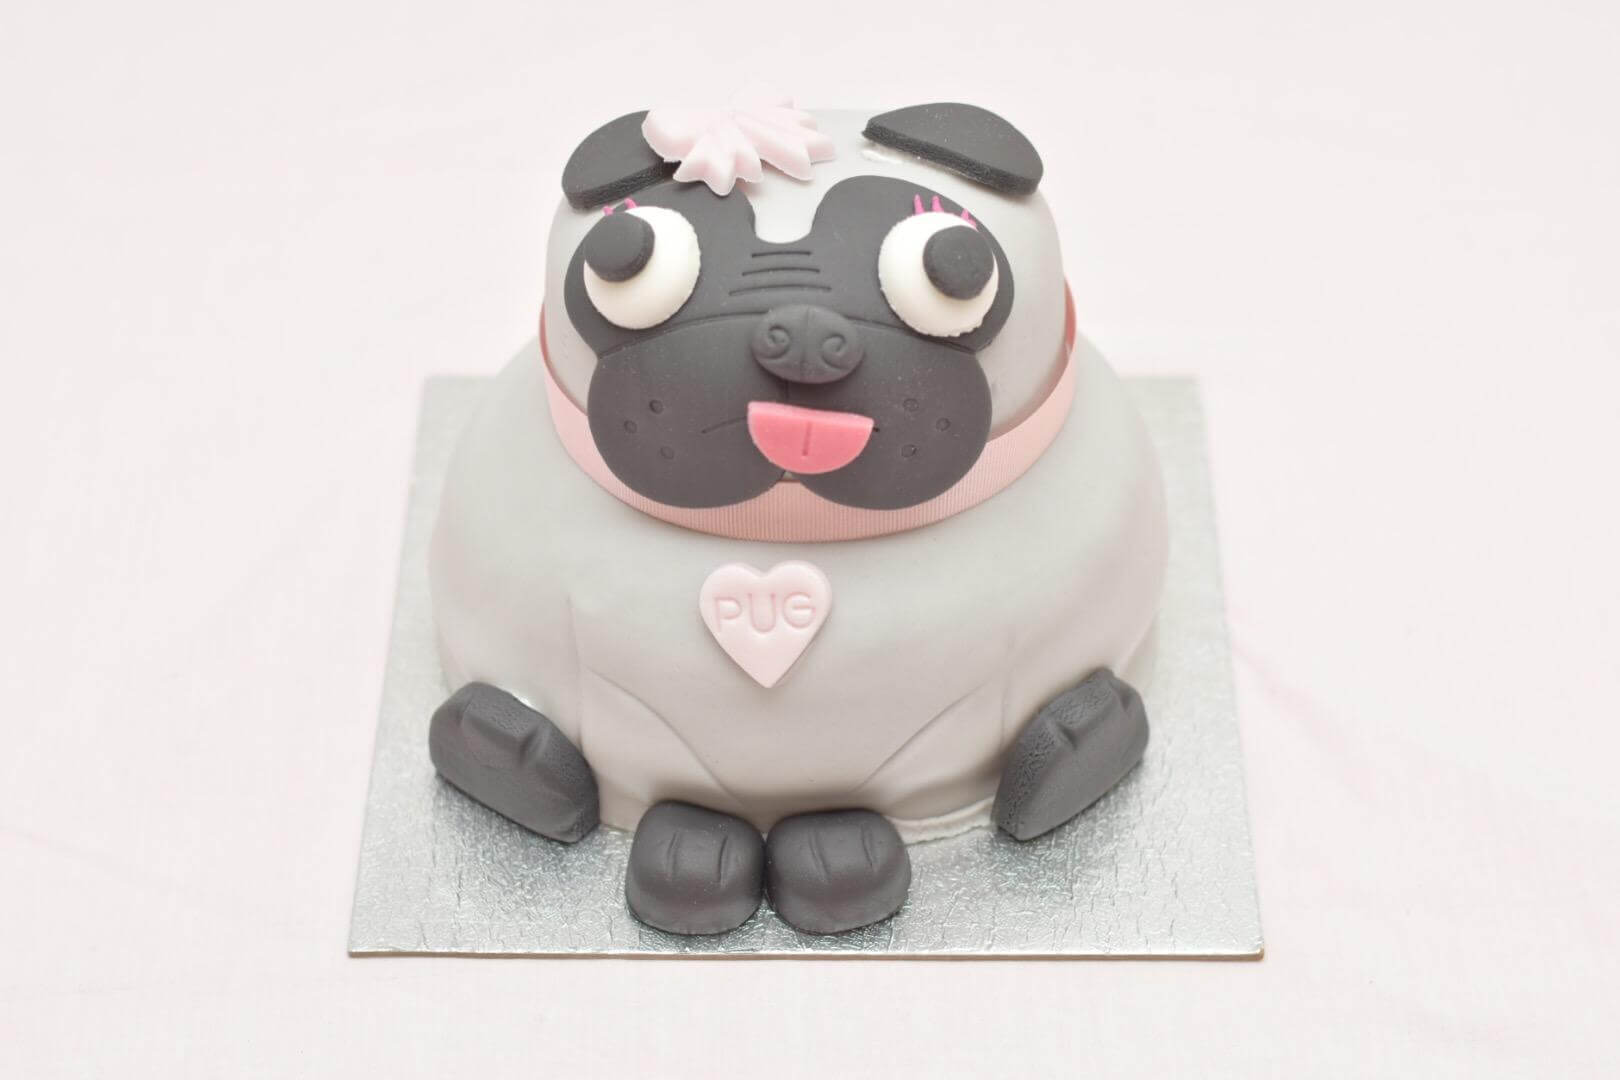 Asda Personalised Birthday Cakes In Store ~ A pug birthday cake from asda · the inspiration edit